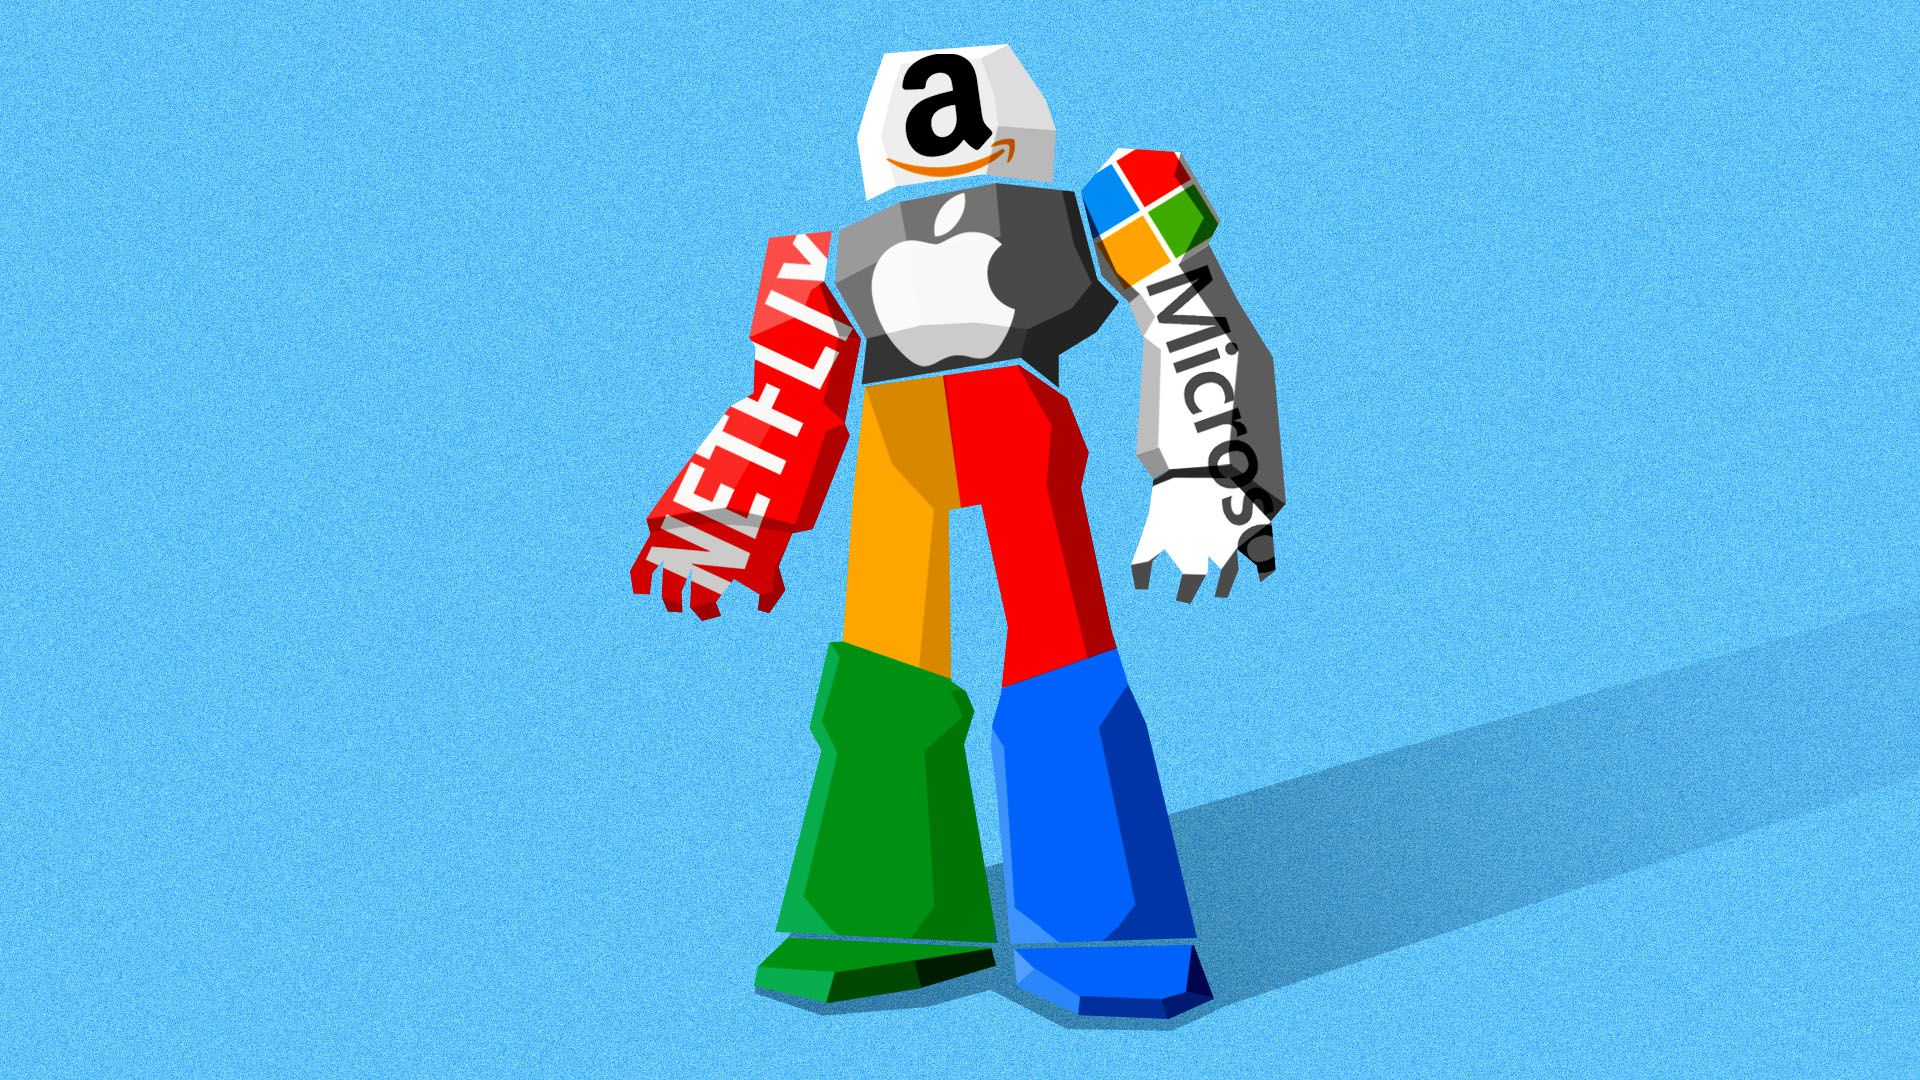 Illustration of a giant robot made up of the logos of big tech companies